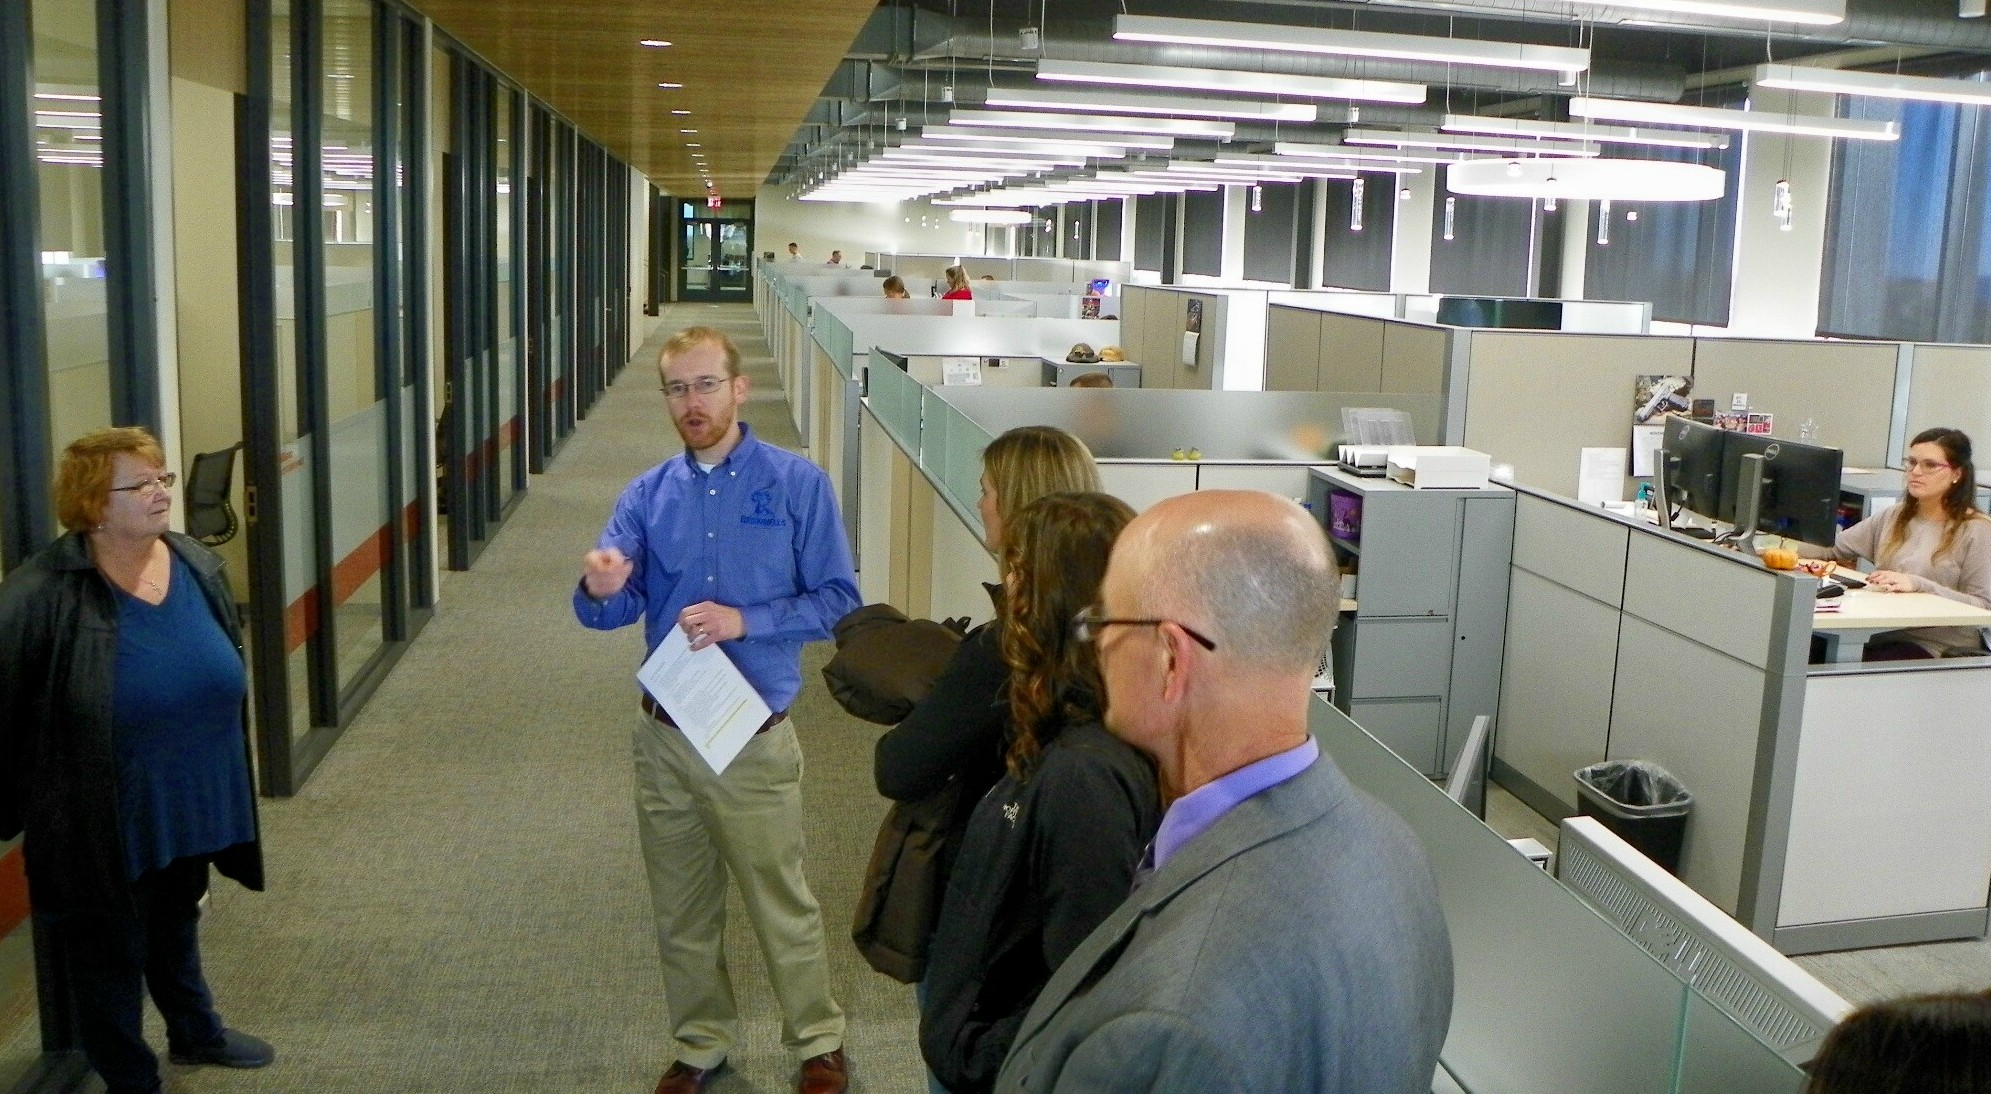 Paul Levy, merchandise manager, led one of the tours of the office area.